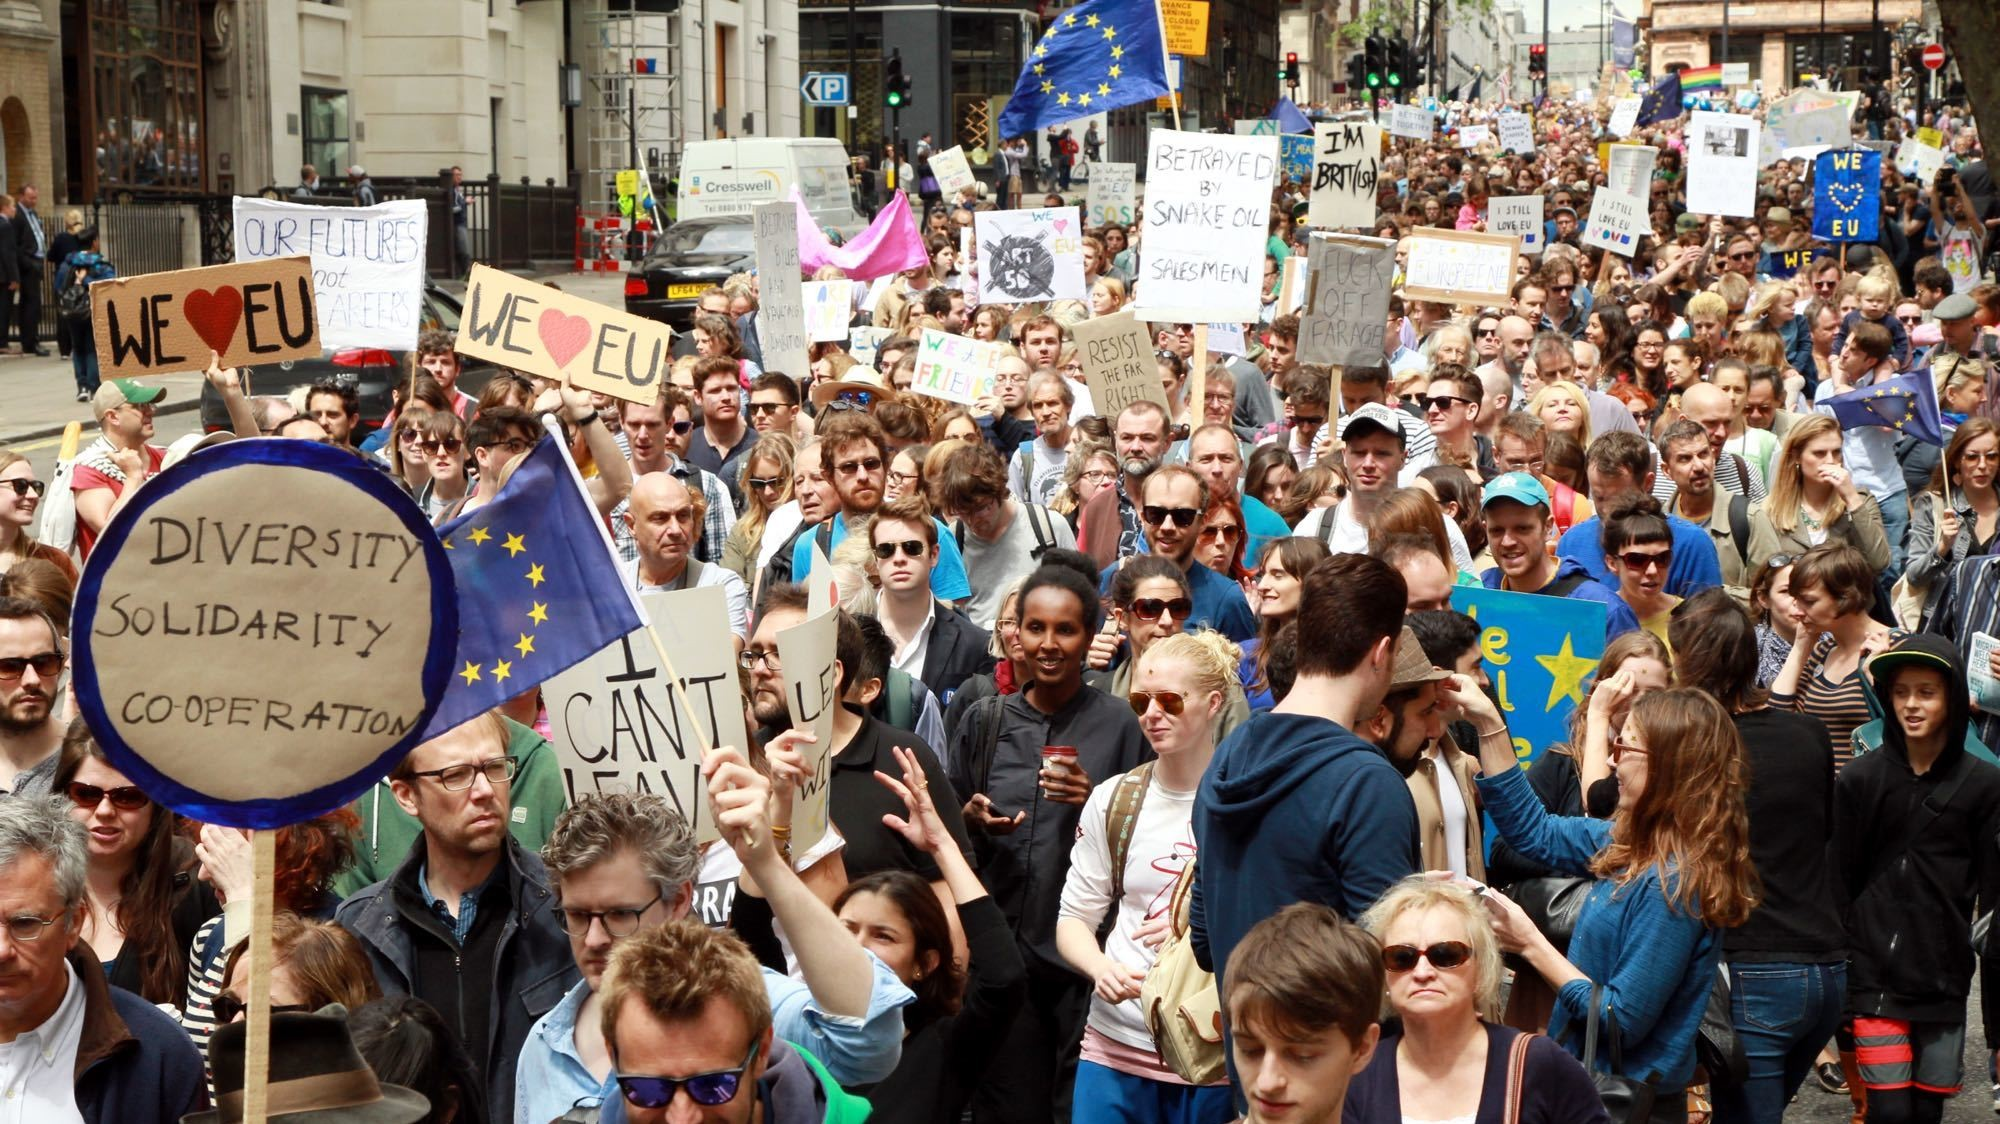 20,000 march on London to protest Brexit